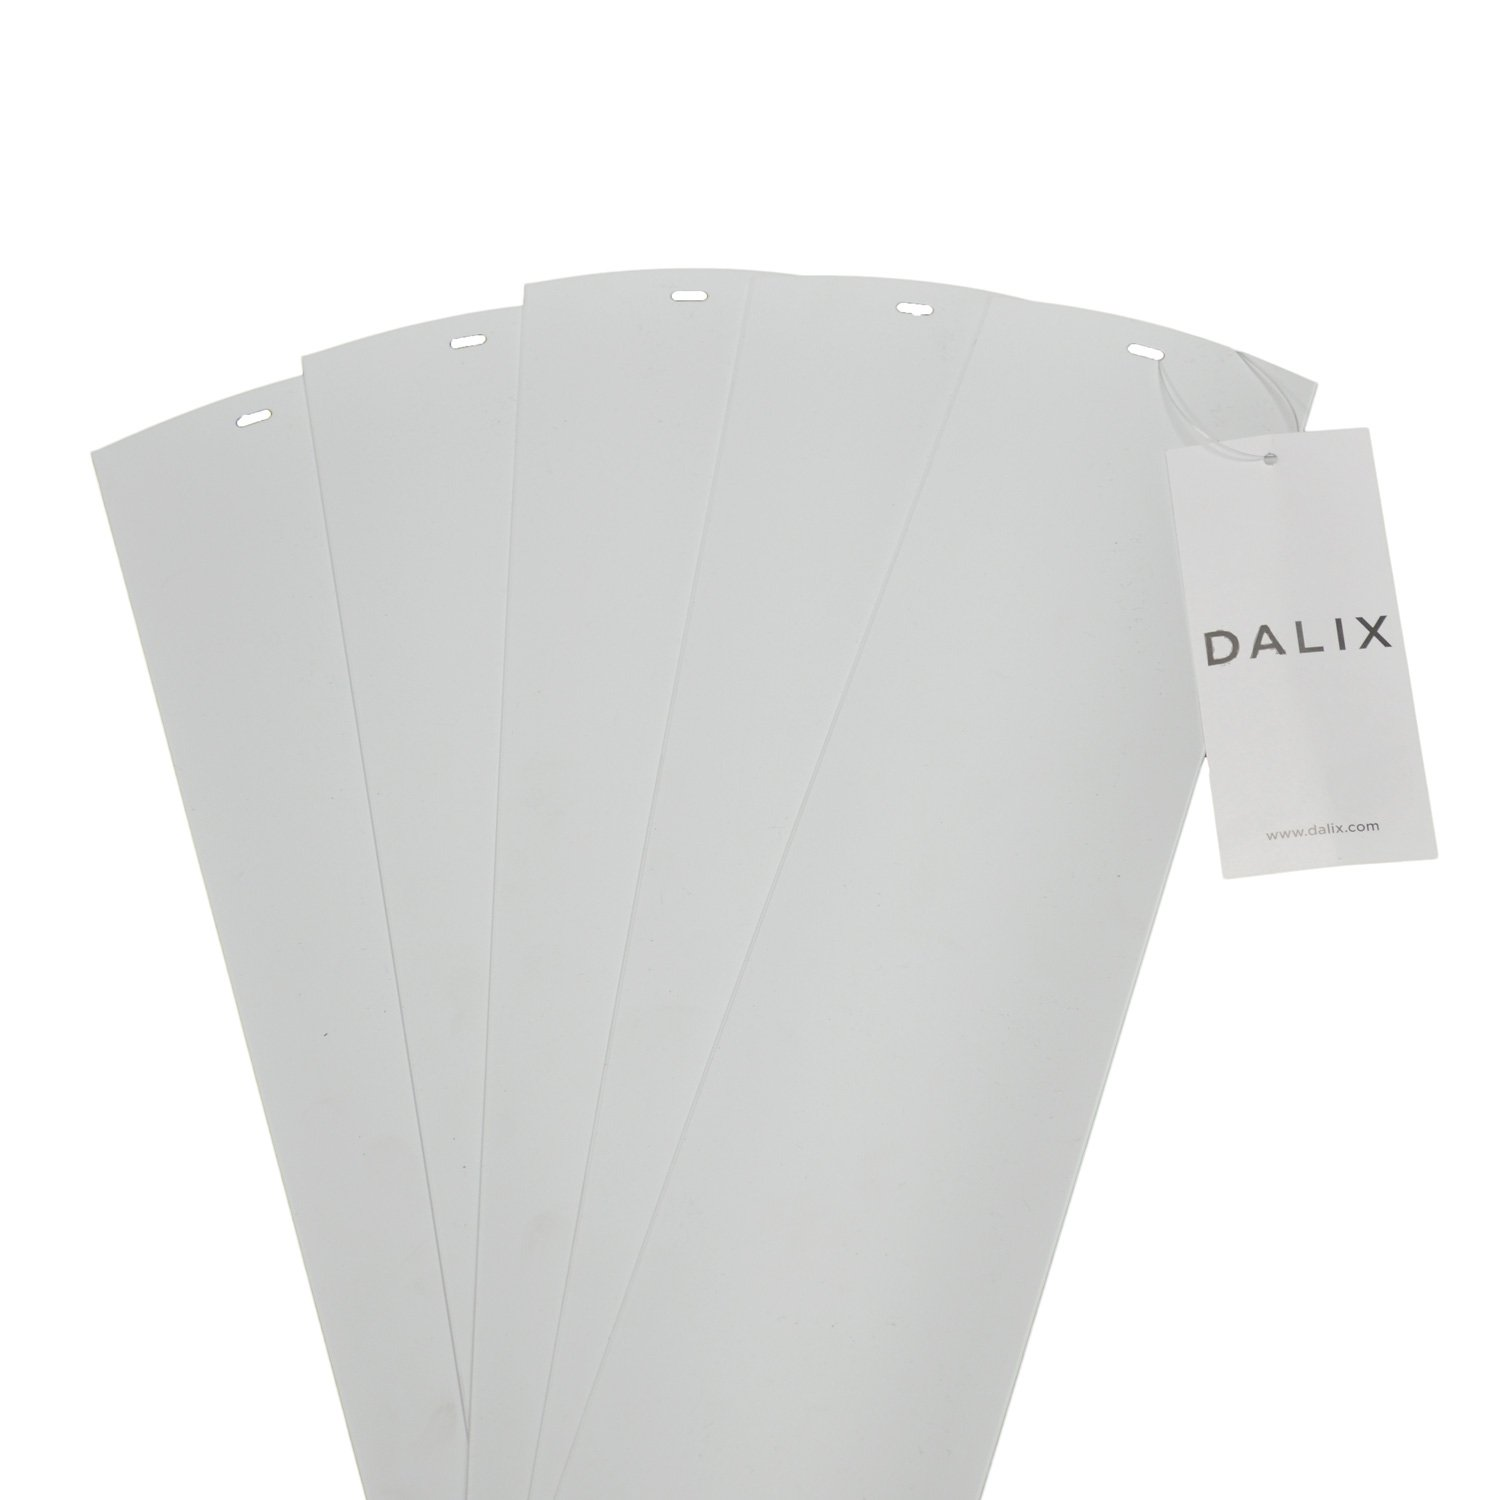 DALIX PVC Vertical Blind Replacement Slats Curved Smooth White 94.5 x 3.5 (5-Pack) by DALIX